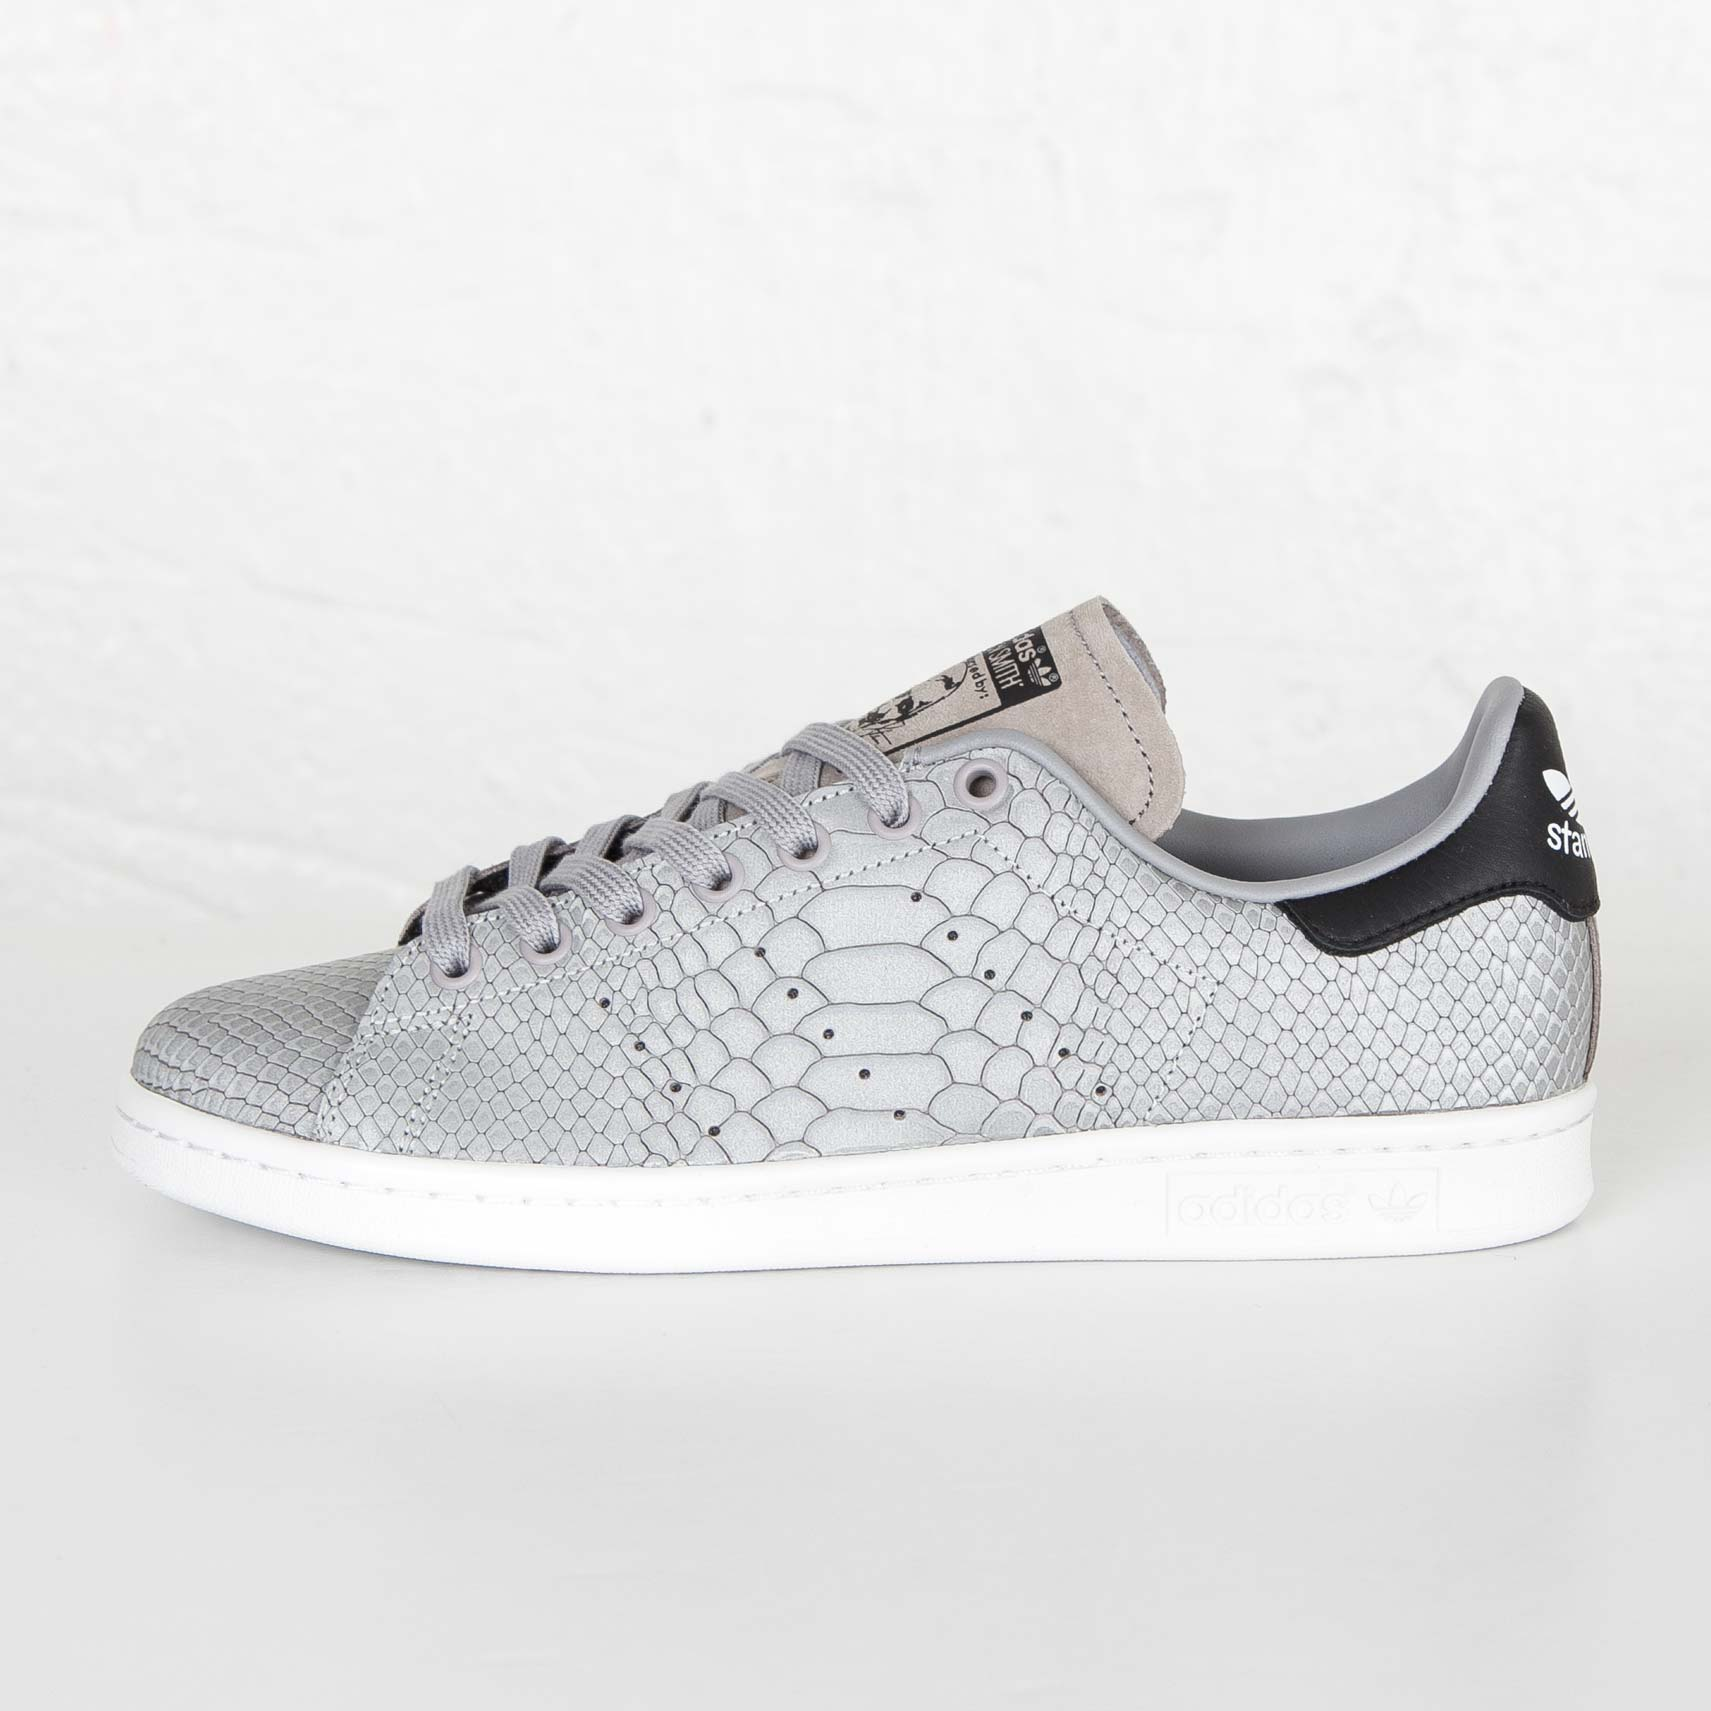 quality design a741f cac6a adidas Stan Smith - S75631 - Sneakersnstuff | sneakers ...